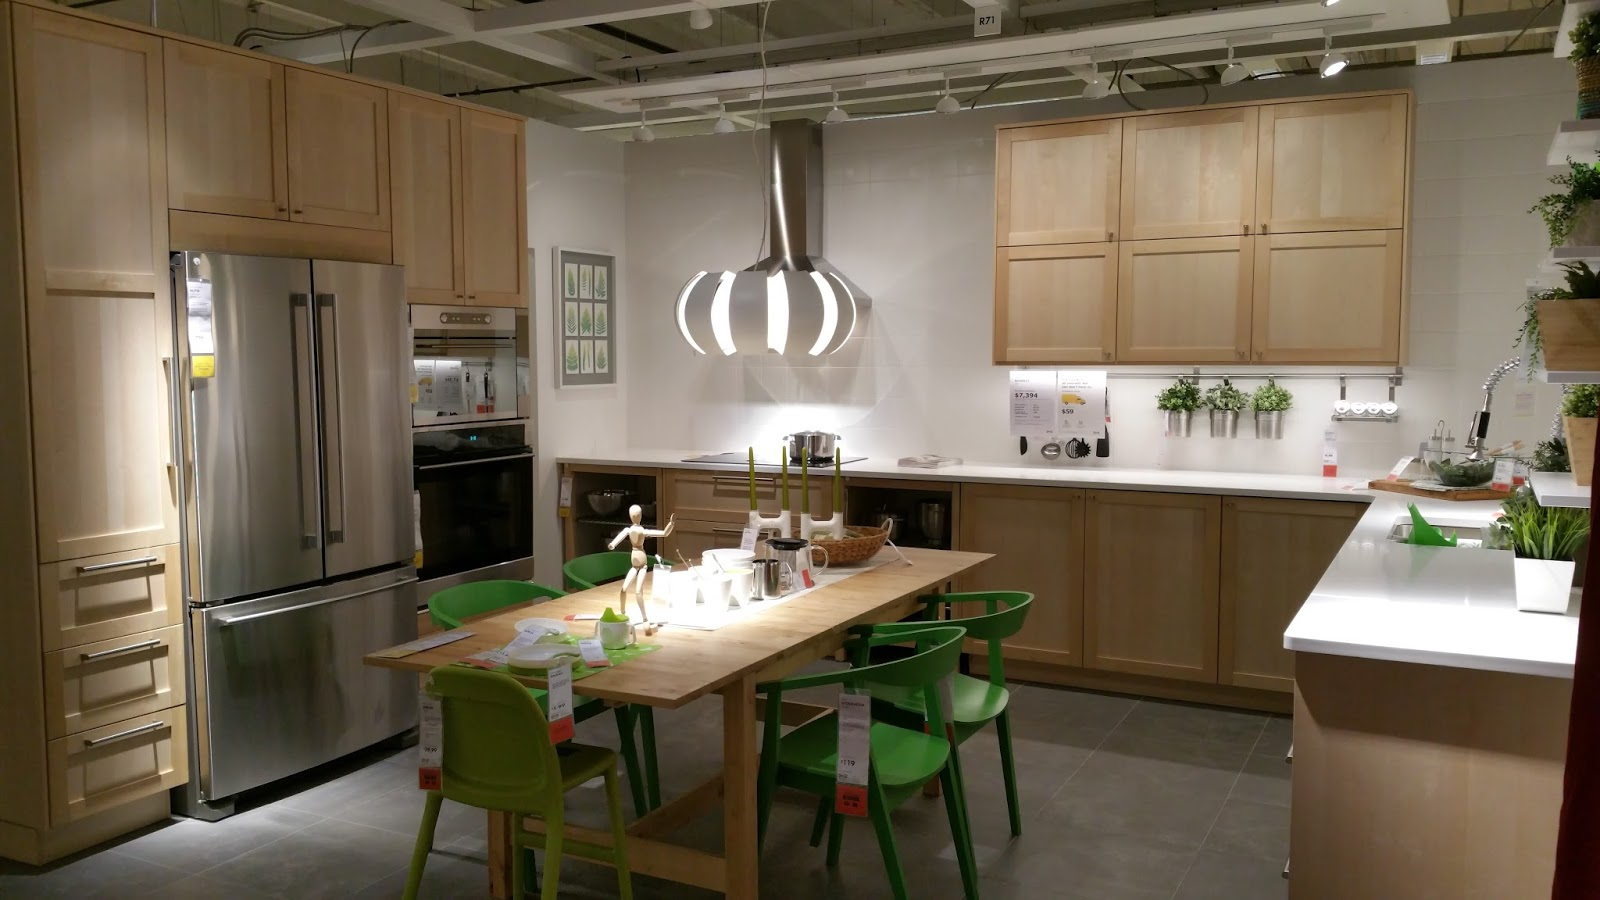 Hog wild home choosing cabinets the perfect kitchen for for Perfect kitchen cabinets